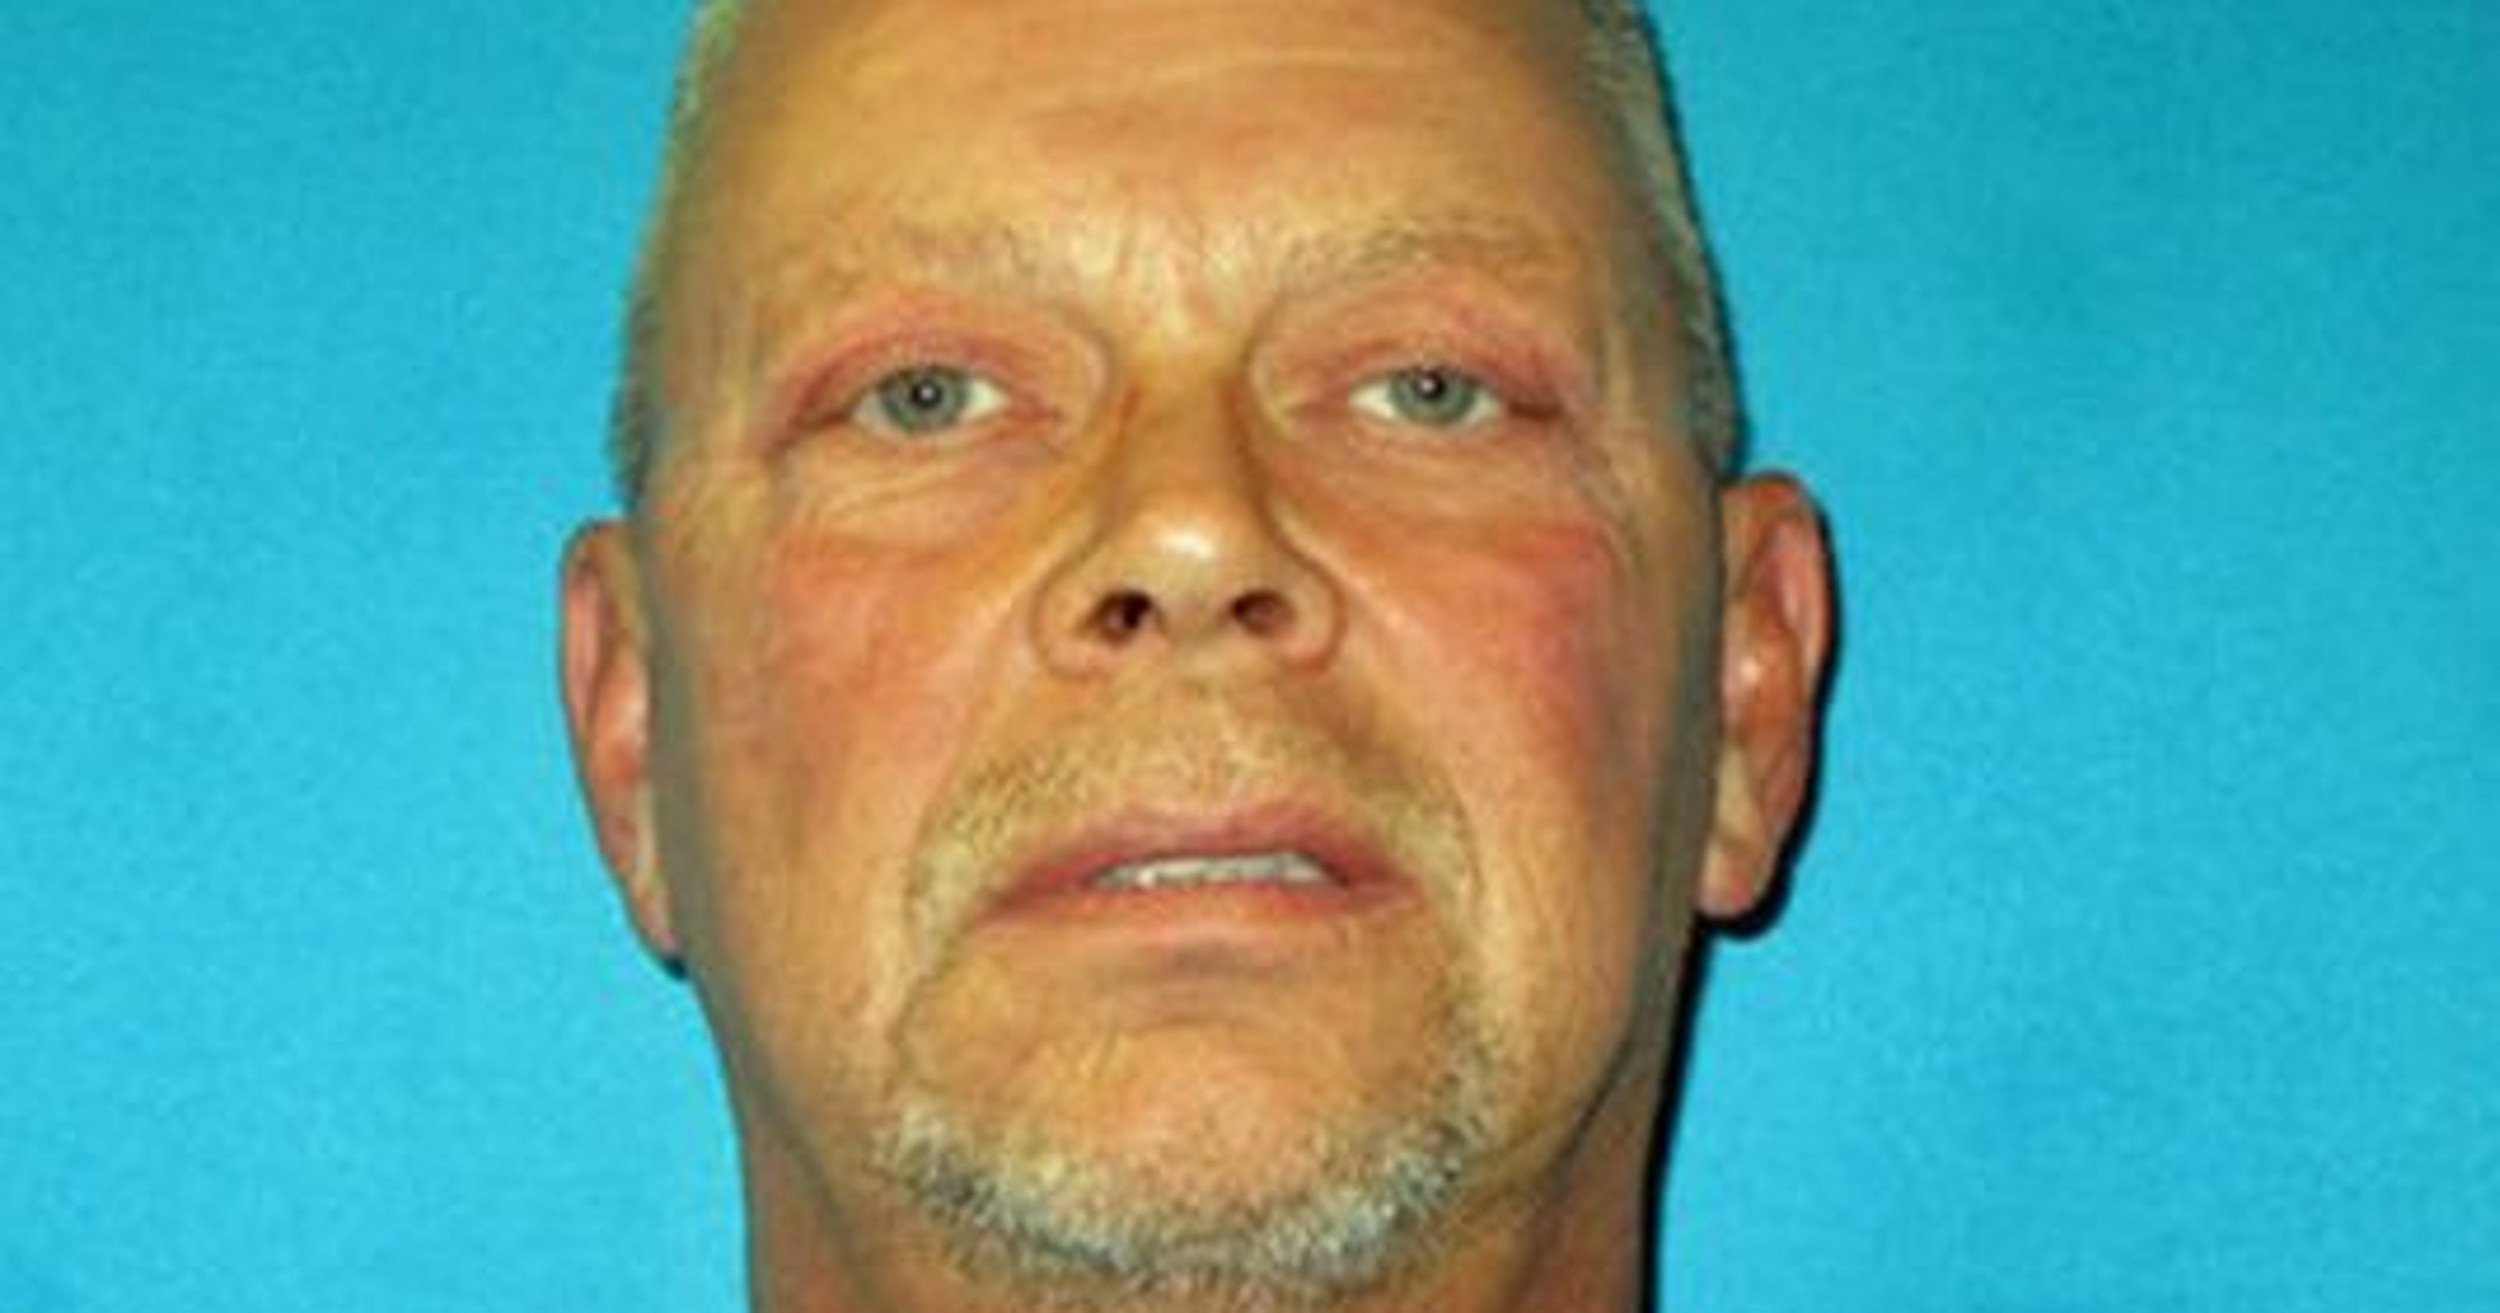 Pleasant Affluenza Teens Dad Charged With Assault In Latest Legal Andrewgaddart Wooden Chair Designs For Living Room Andrewgaddartcom